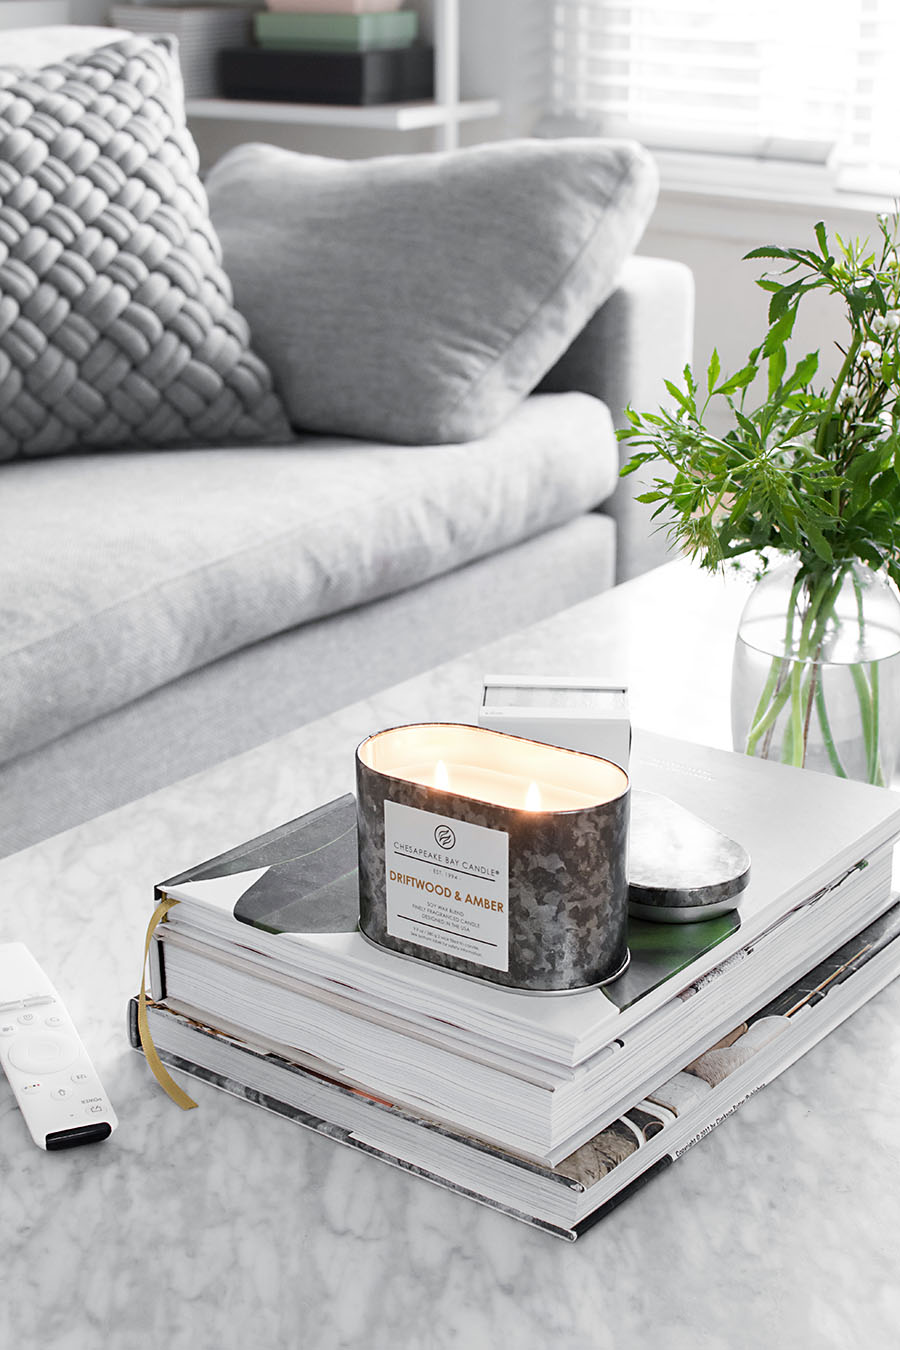 Easy Ways To Style A Coffee Table Homey Oh My - Coffee table that looks like books